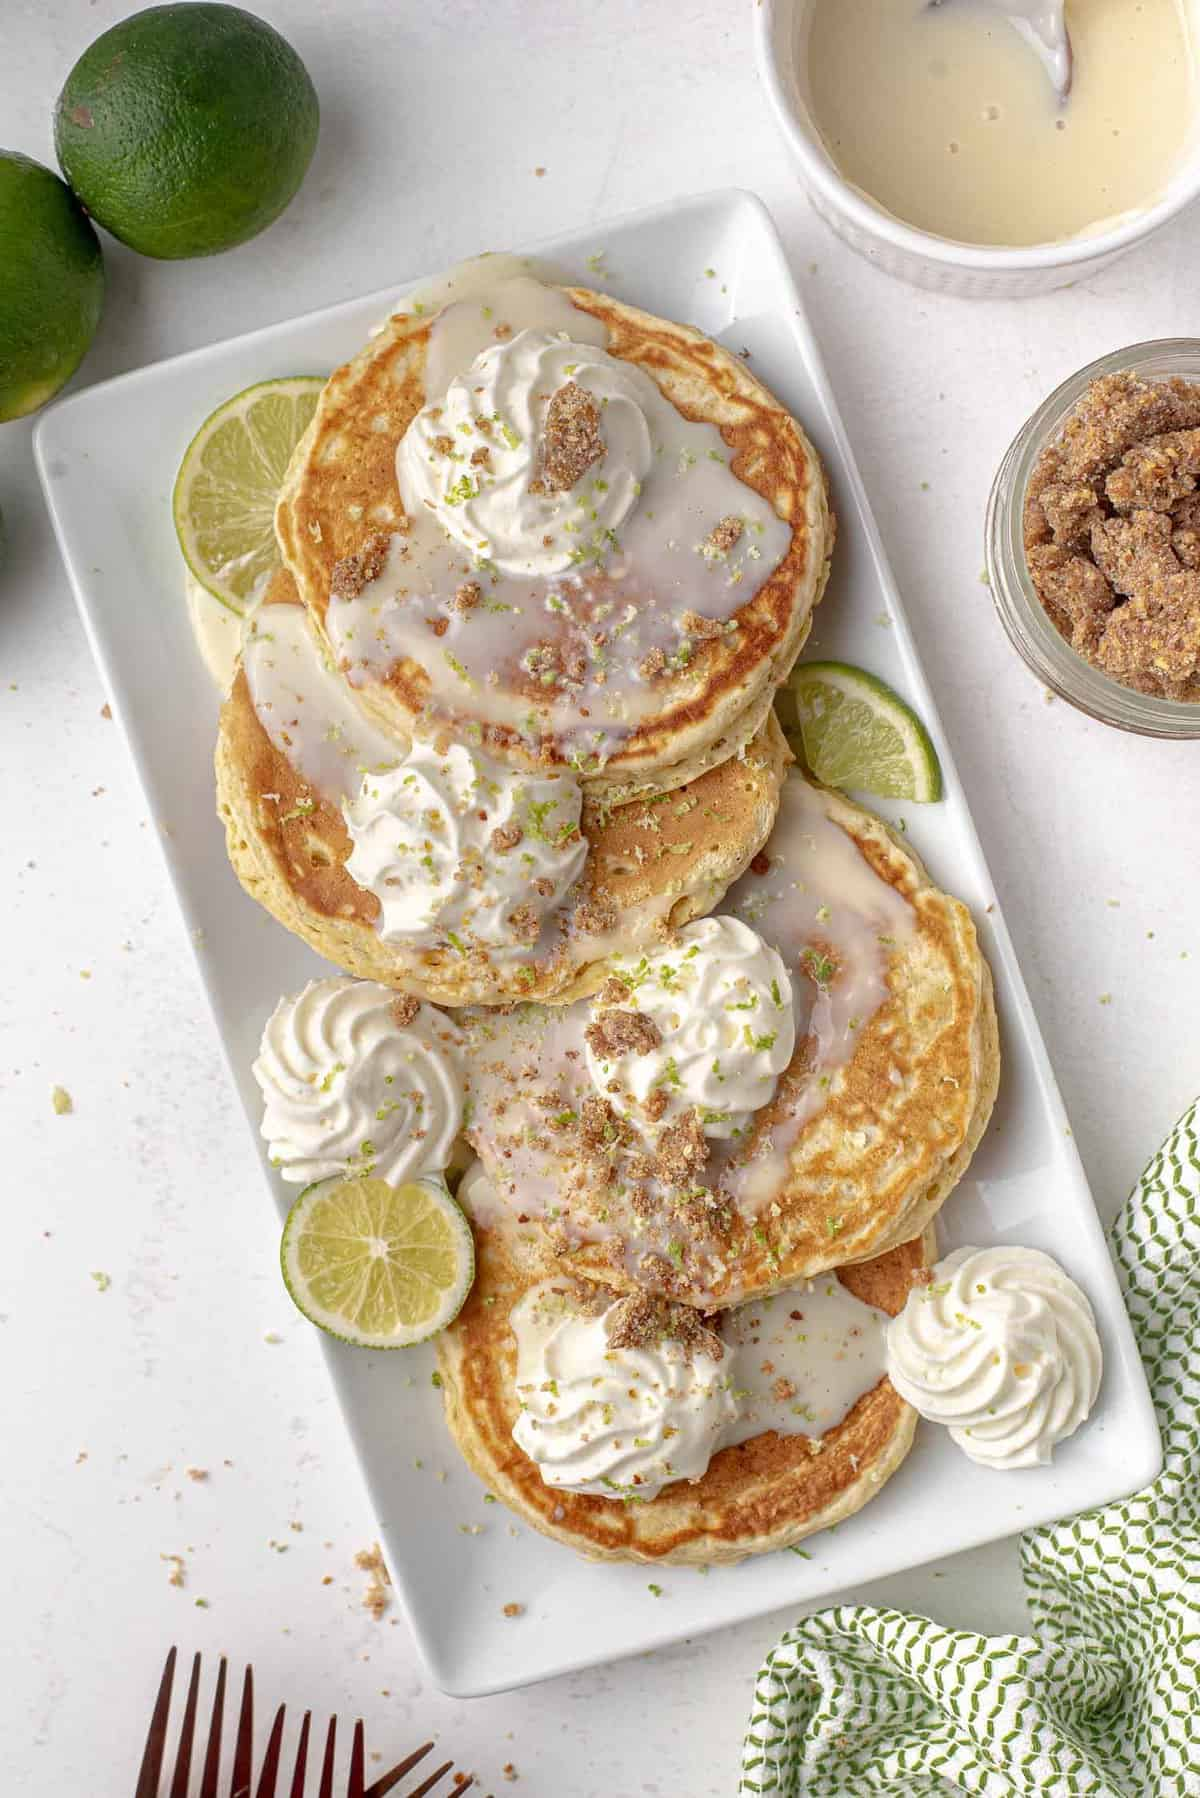 Overhead view of four pancakes on a plate with limes, whipped cream, graham cracker crumbs.